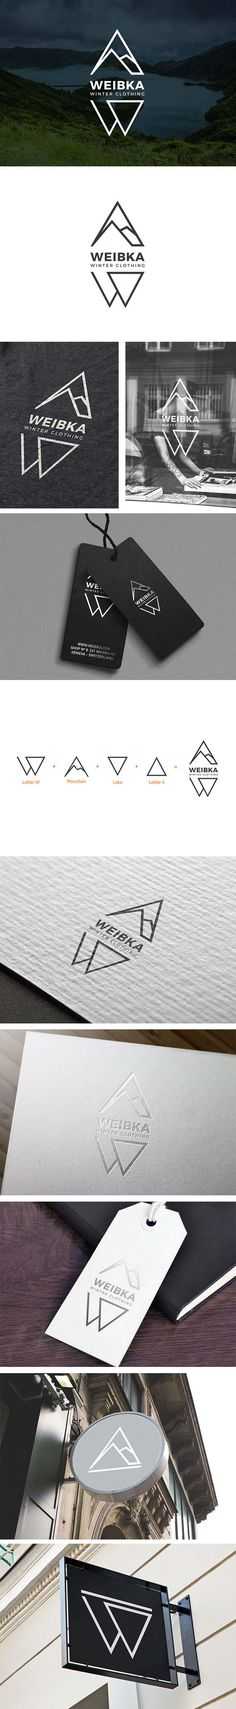 Weibka Winter Clothing Logo Design, Fashion & Sport Brand Identity | Letter…